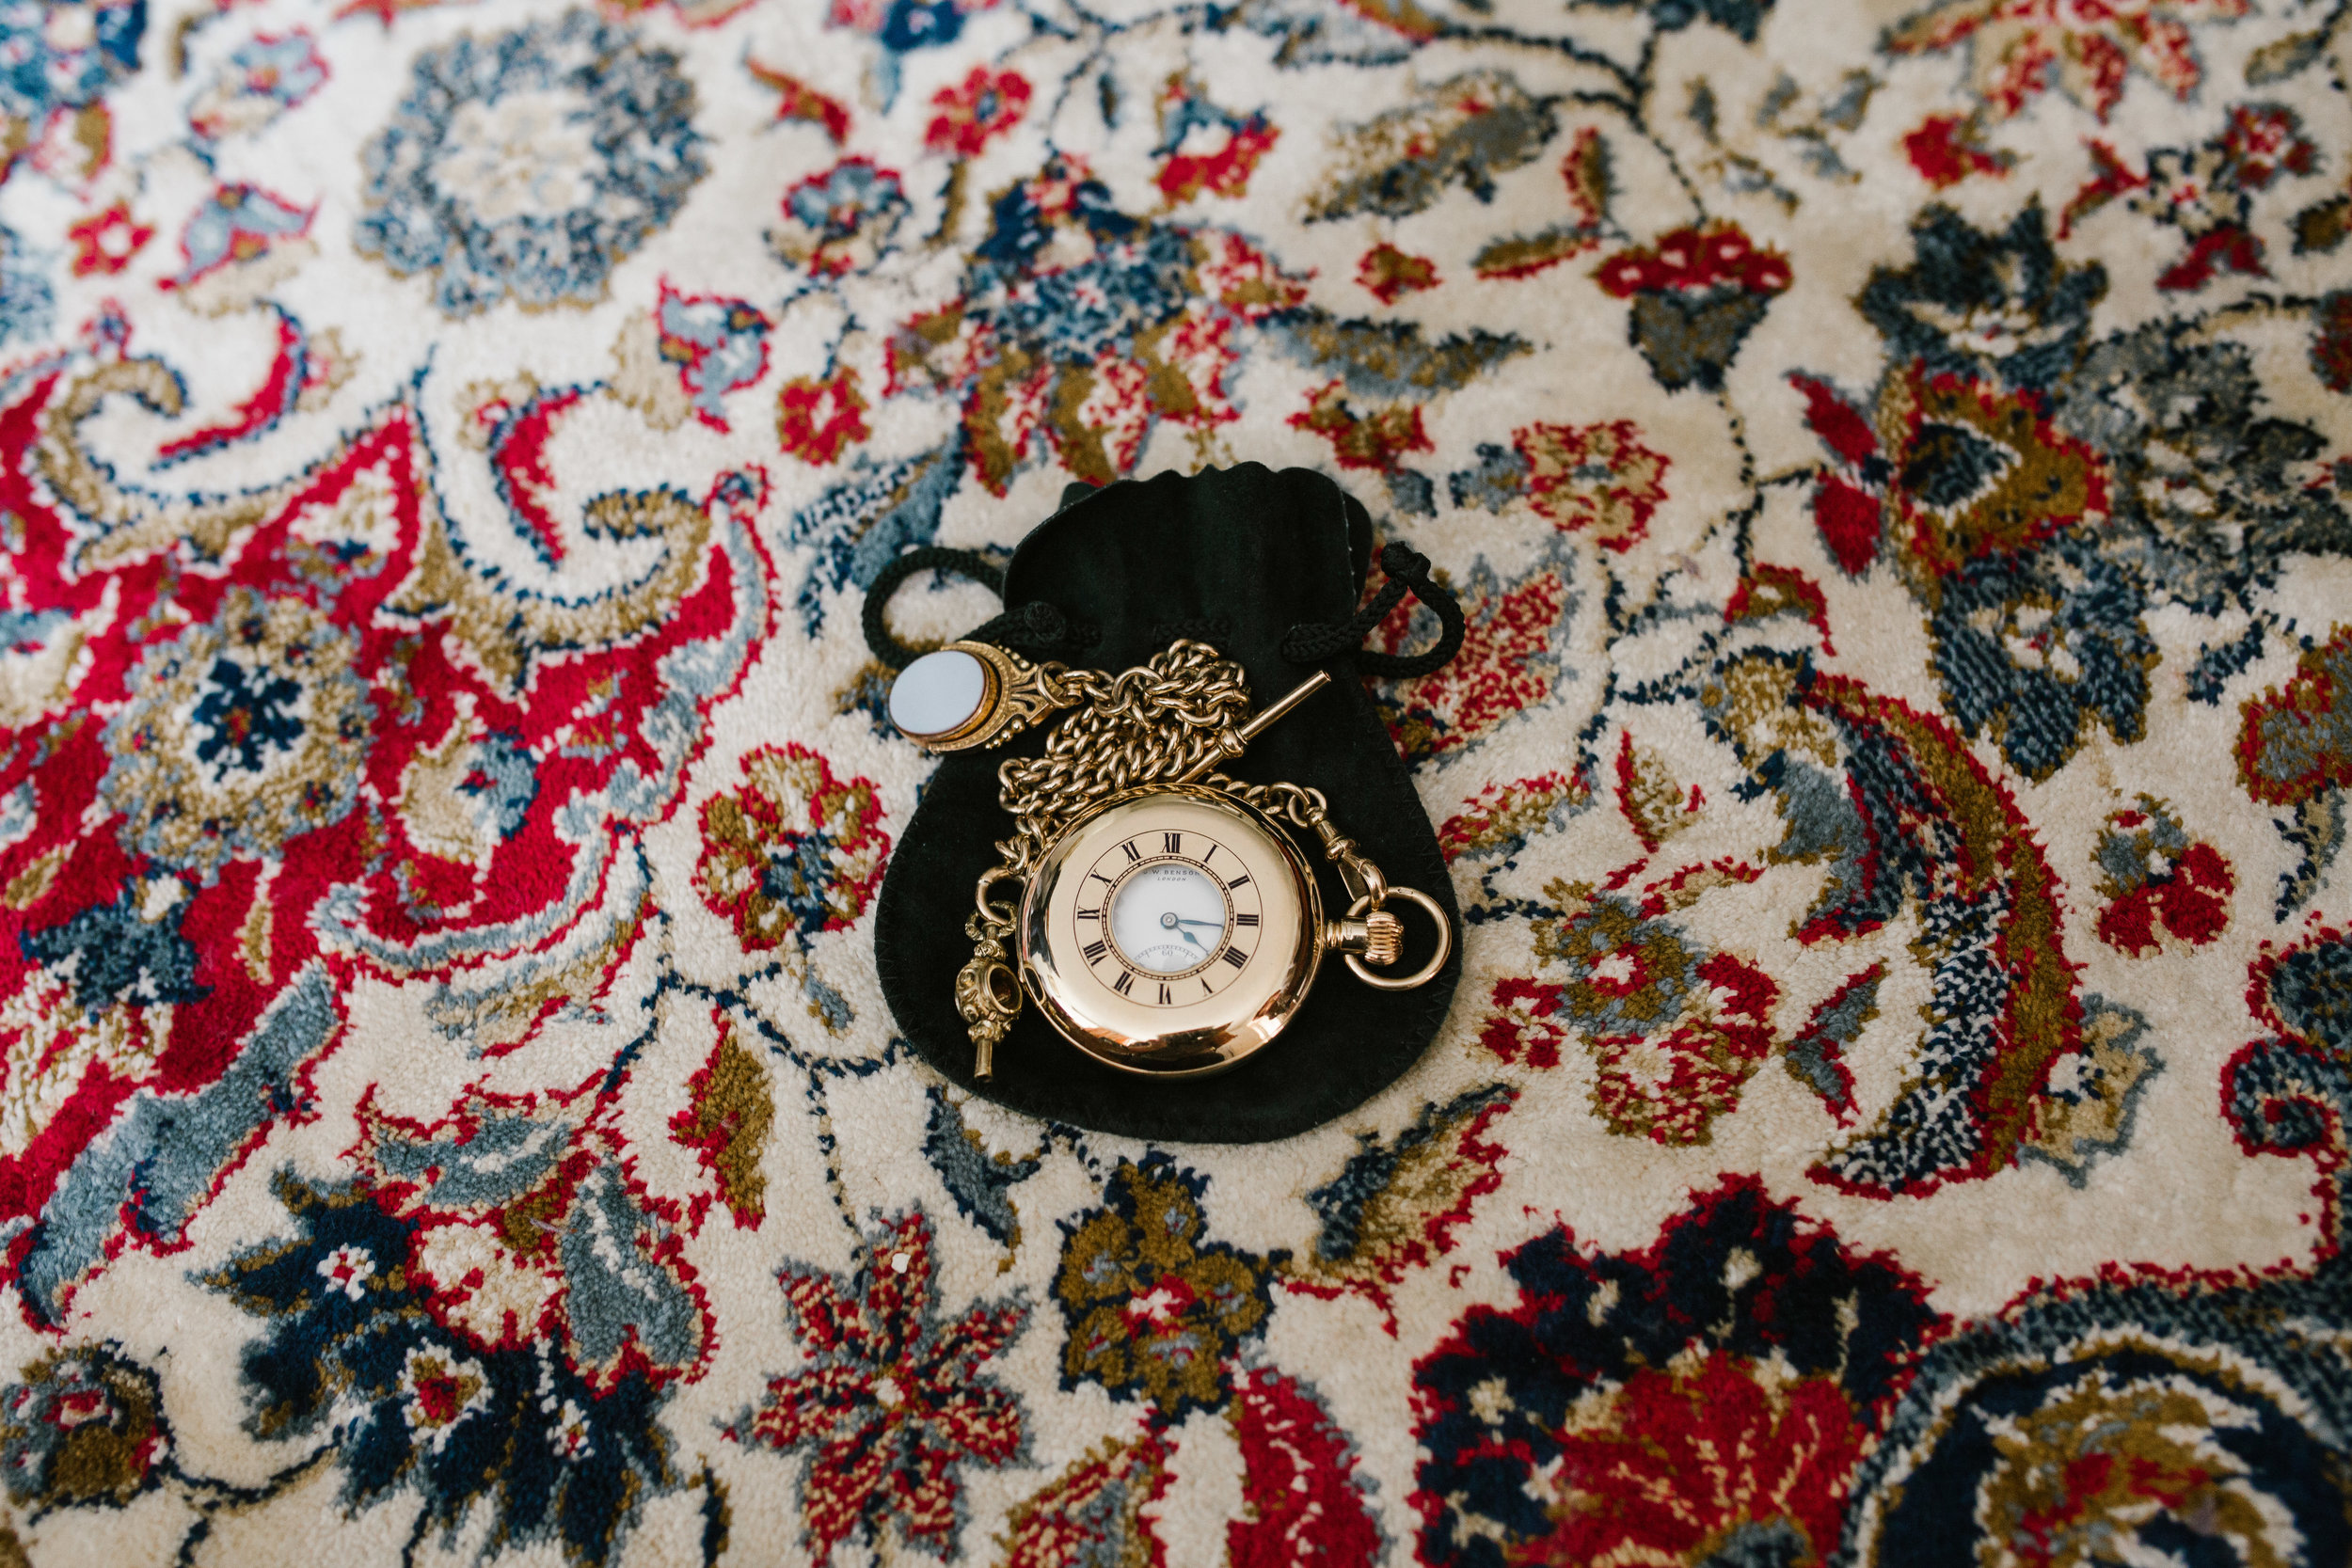 antique pocket watch on patterned carpet